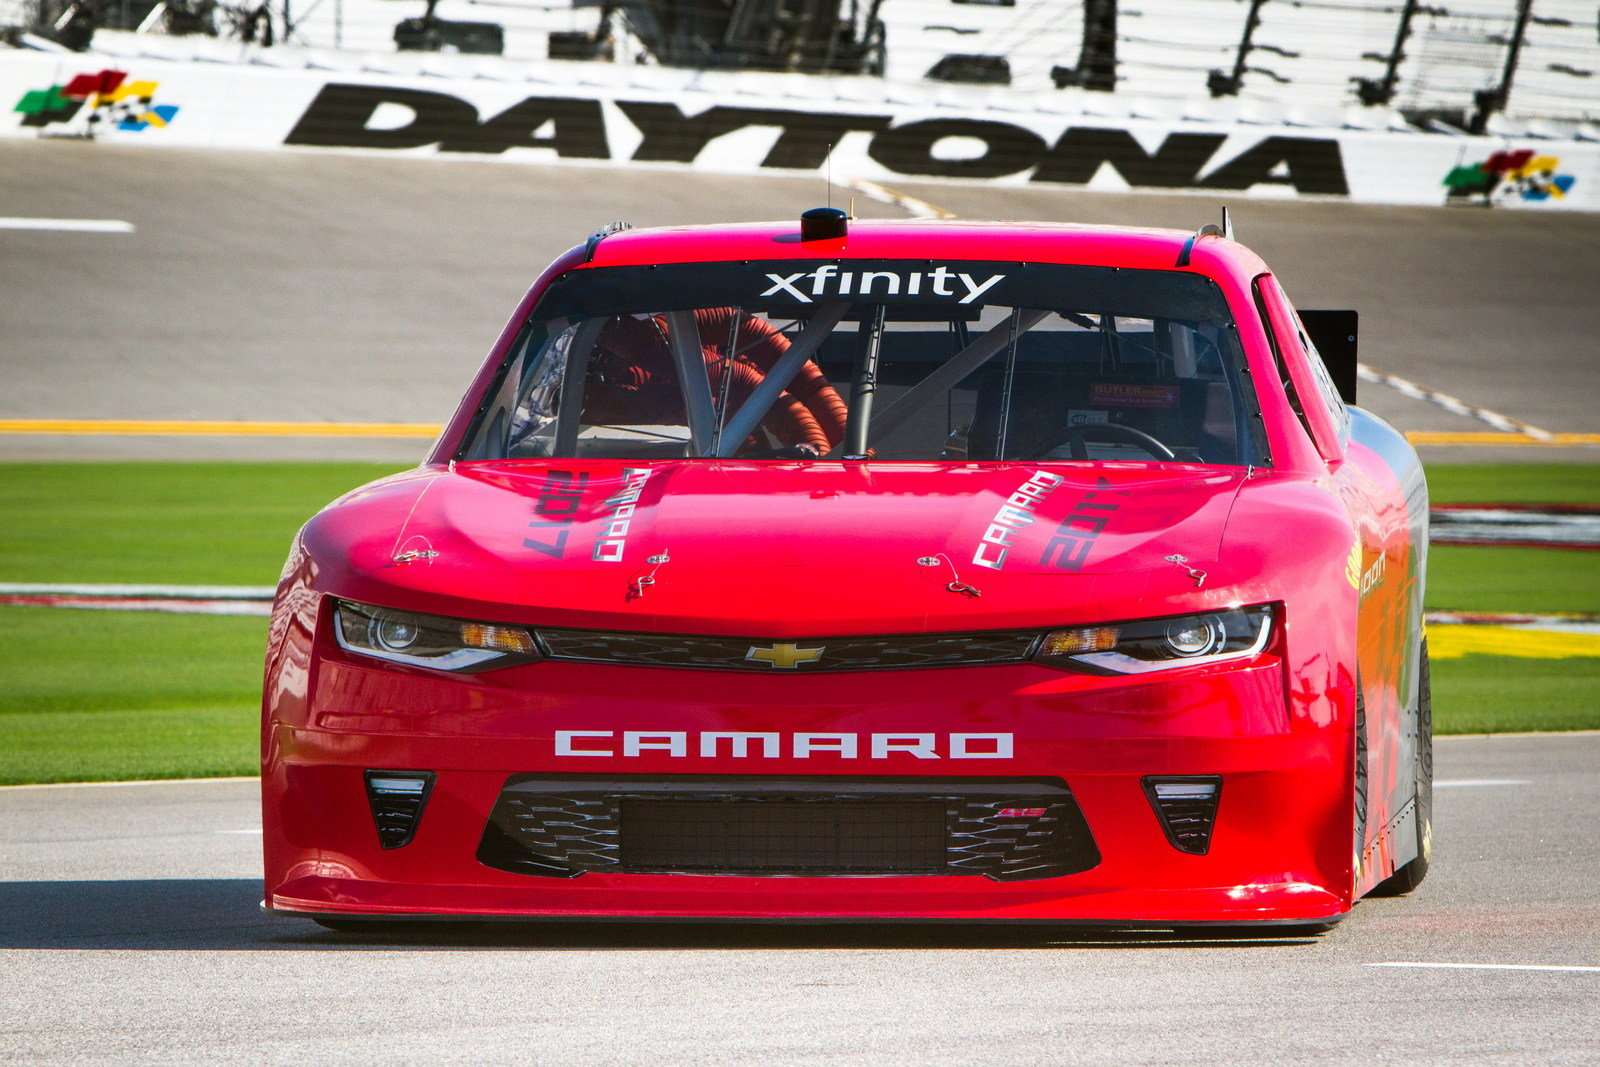 2017 Chevrolet Camaro NASCAR Xfinity Race Car - Picture ...